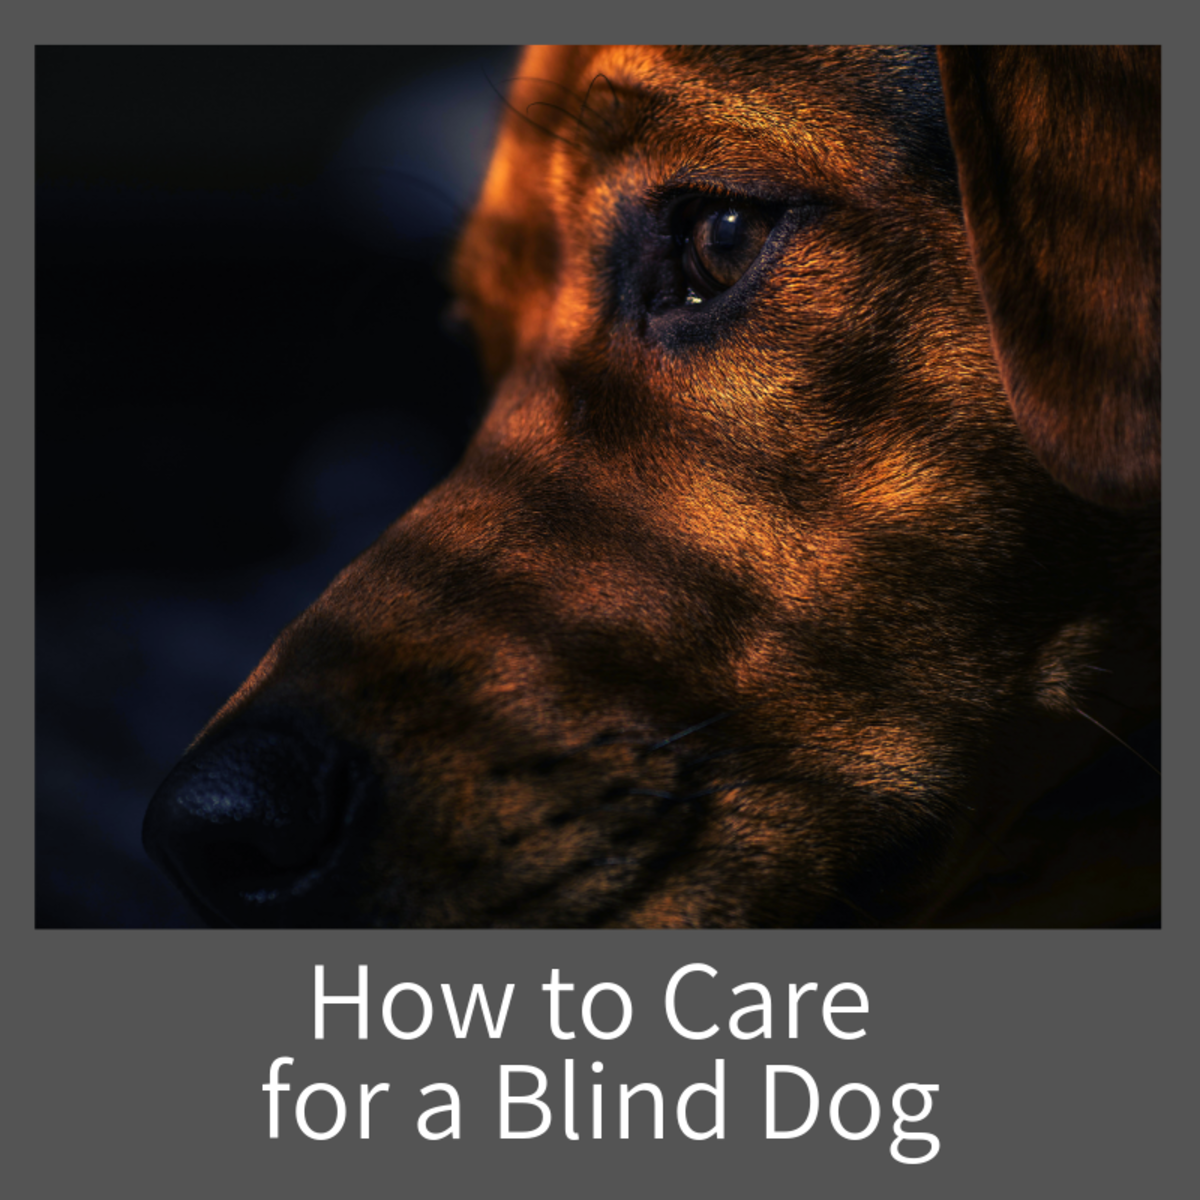 Learn how what signs to look for, and how to care for your blind dog.